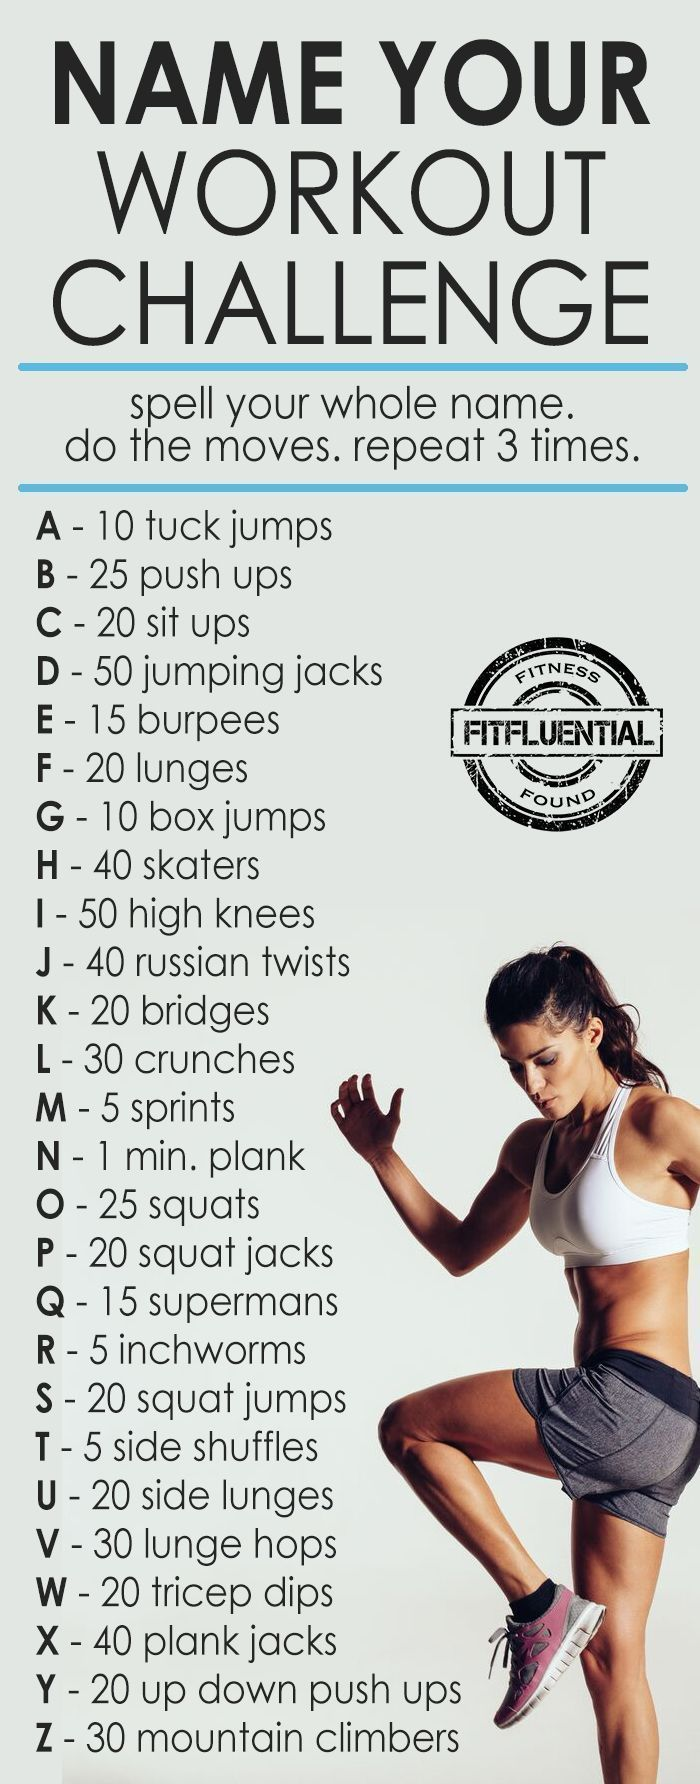 Mind, Body, and Soul Workout Challenge recommend